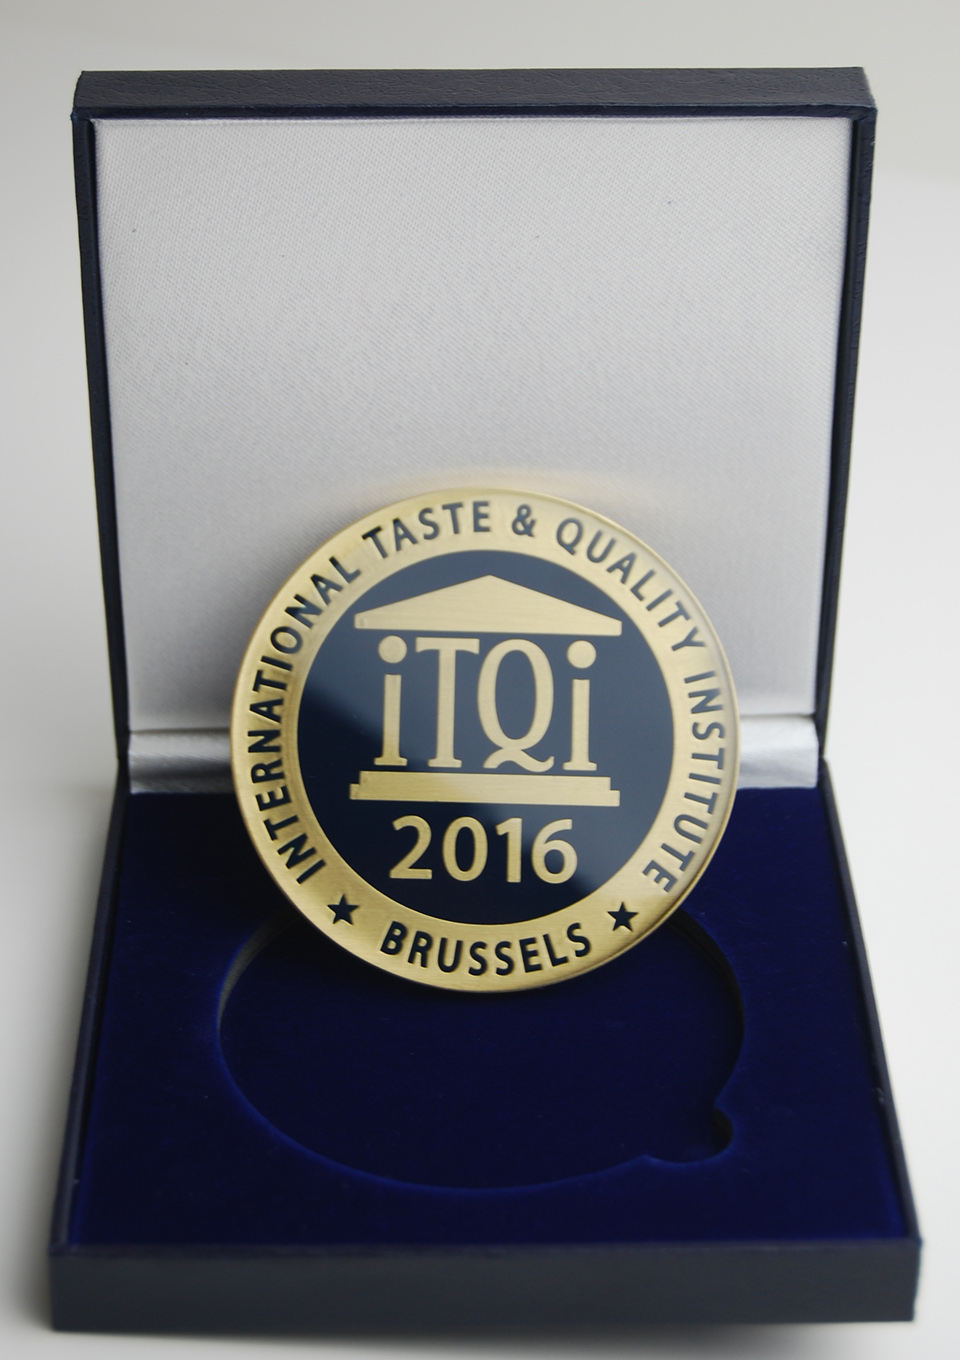 Awarded Two Stars (iTQi) in the Belgian Black Tea Evaluation